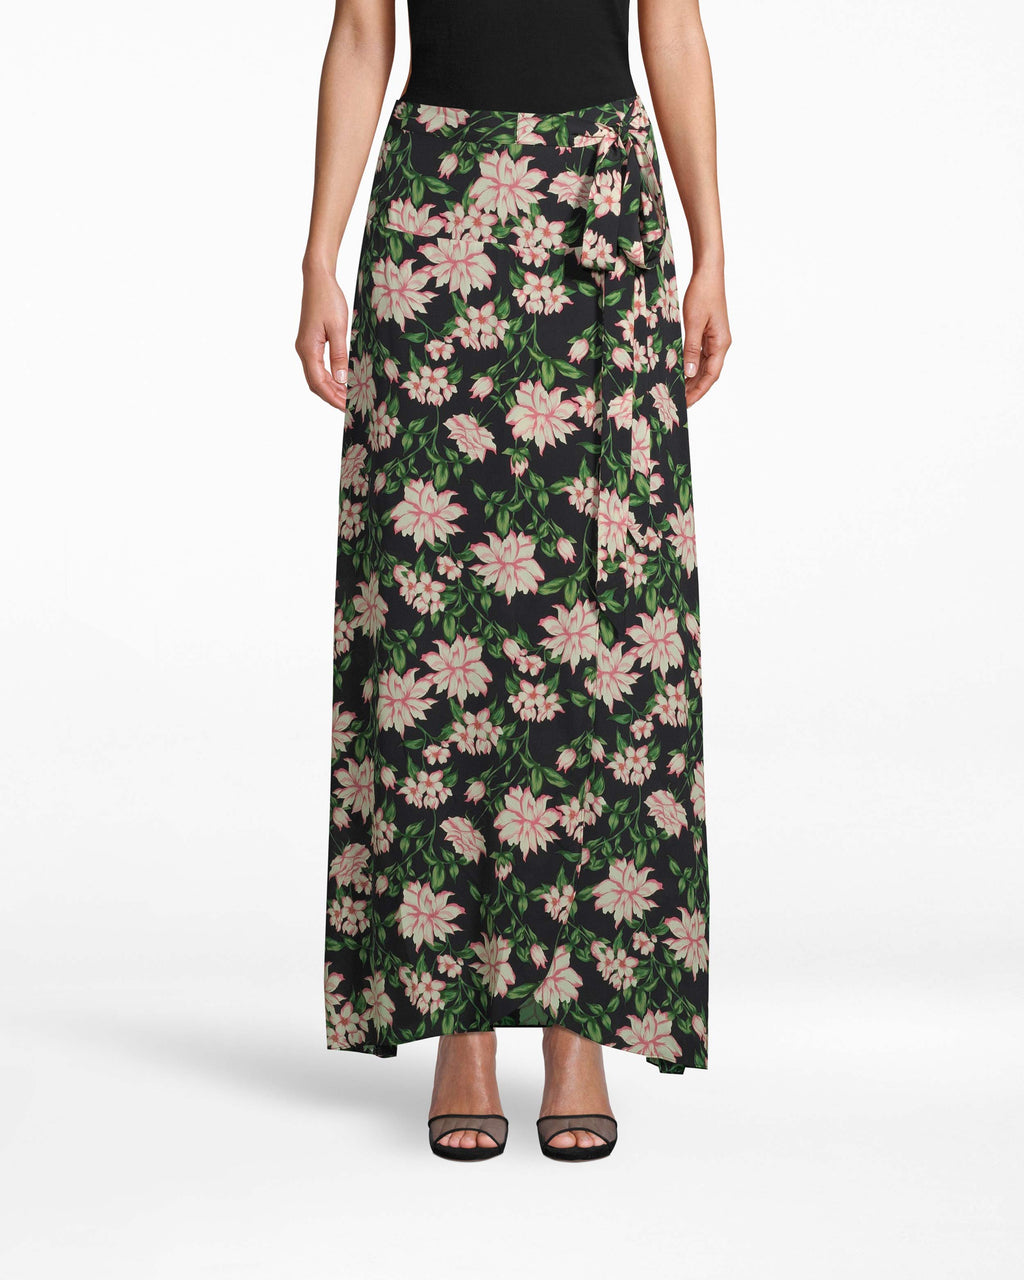 BL10167 - SPRING DREAM SKIRT - bottoms - skirts - WEAR THIS RUNWAY LOOK EVERYWHERE FROM THE BEACH TO BRUNCH. THIS FAUX WRAP SKIRT FEATURES A TIE SIDE AND SIDE SLIT. CONCEALED BACK ZIPPER FOR CLOSURE.